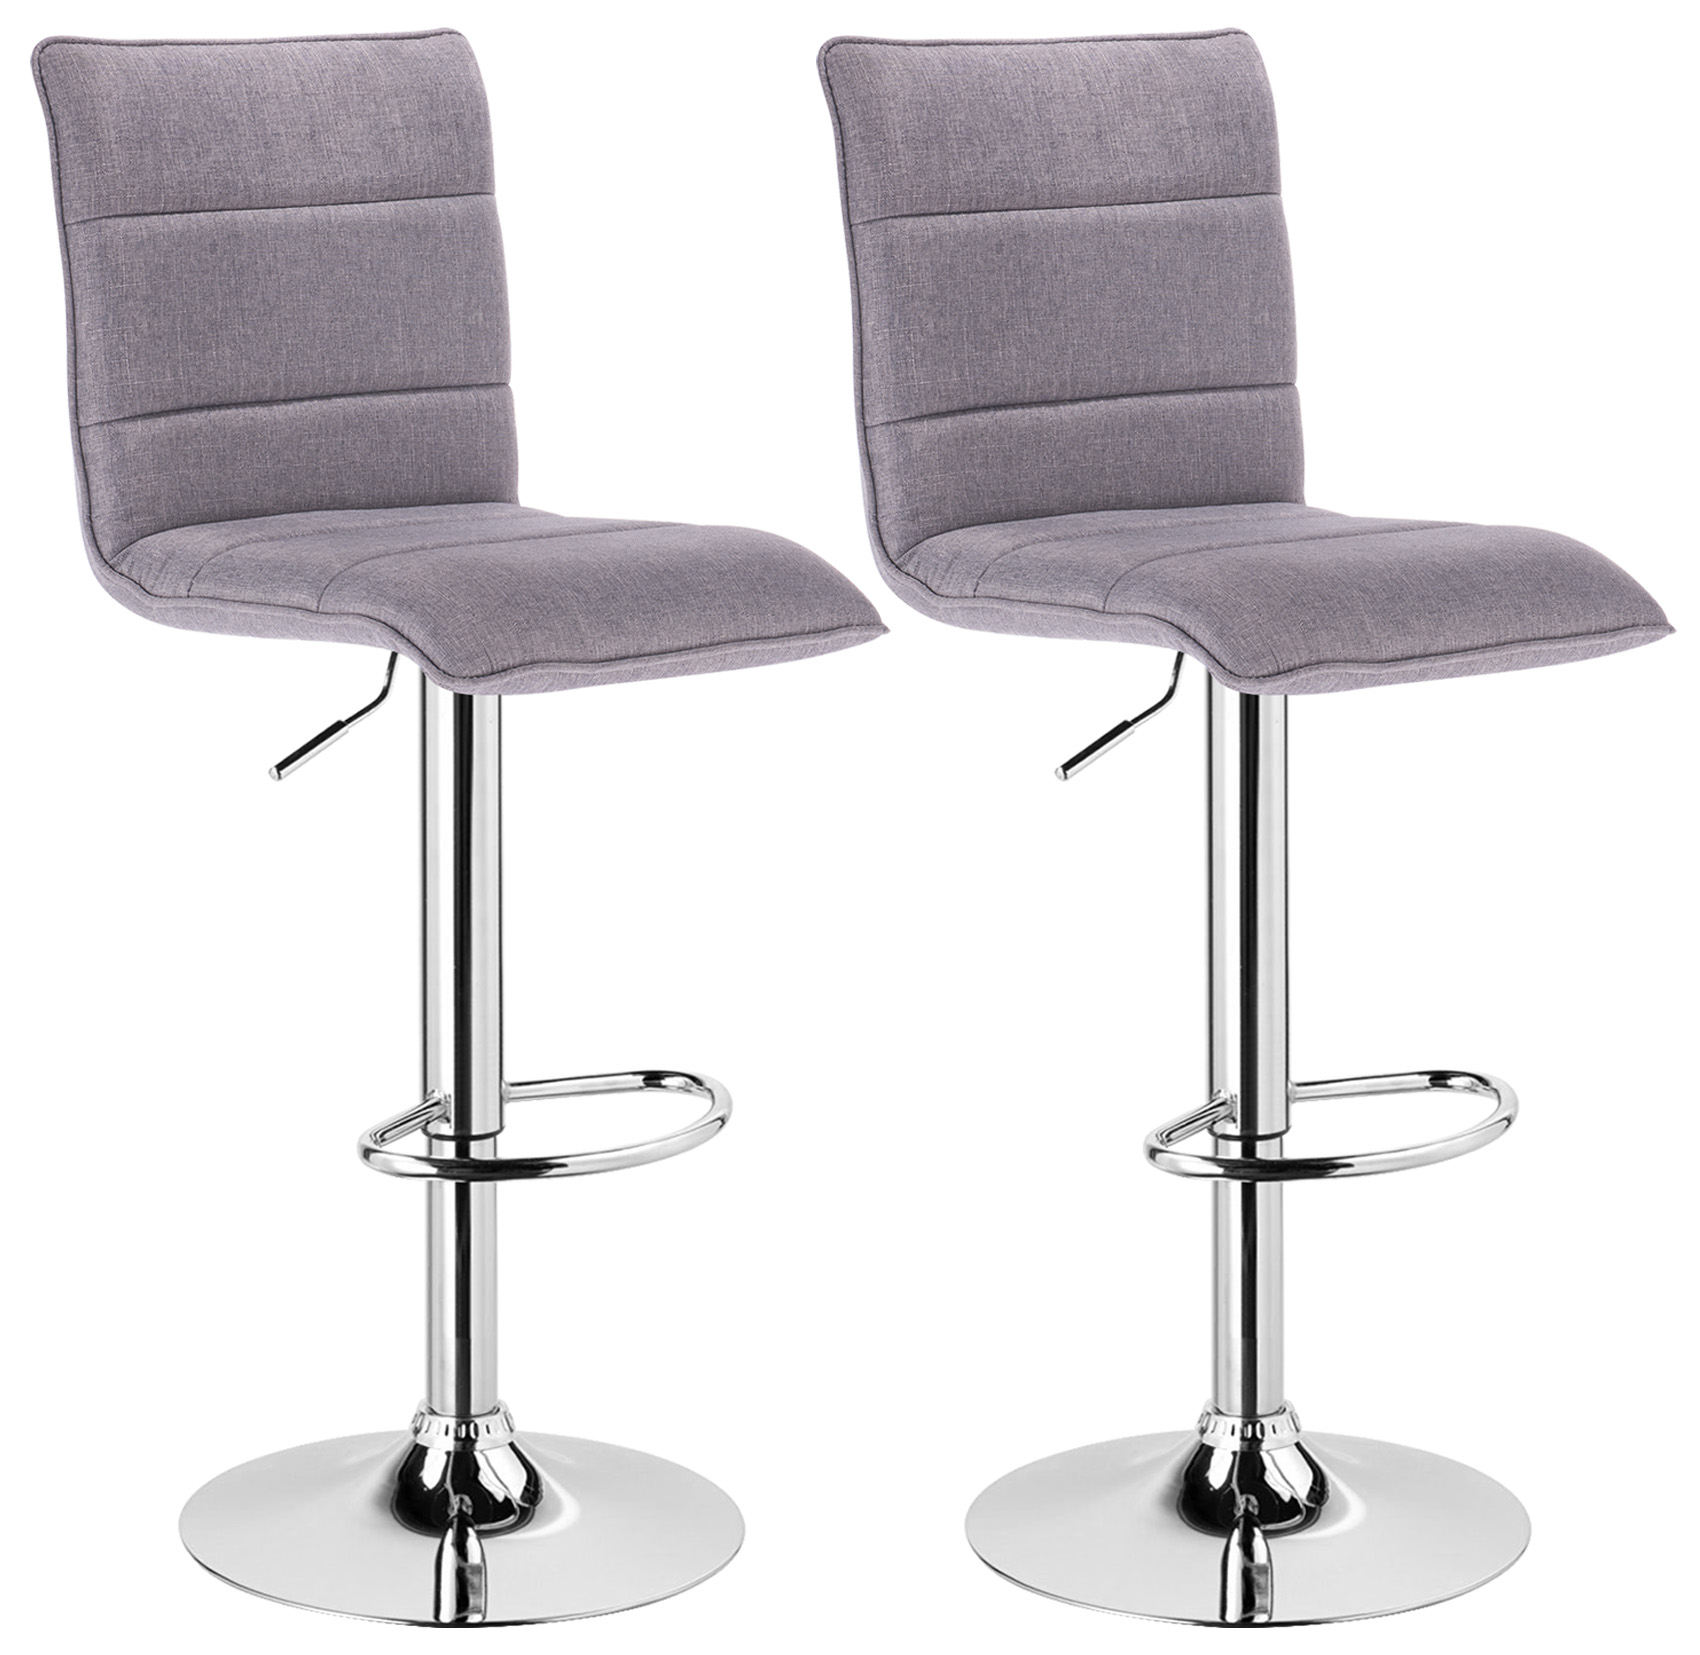 Bar Stools Set Of 2 Faux Leather Kitchen Breakfast Stool